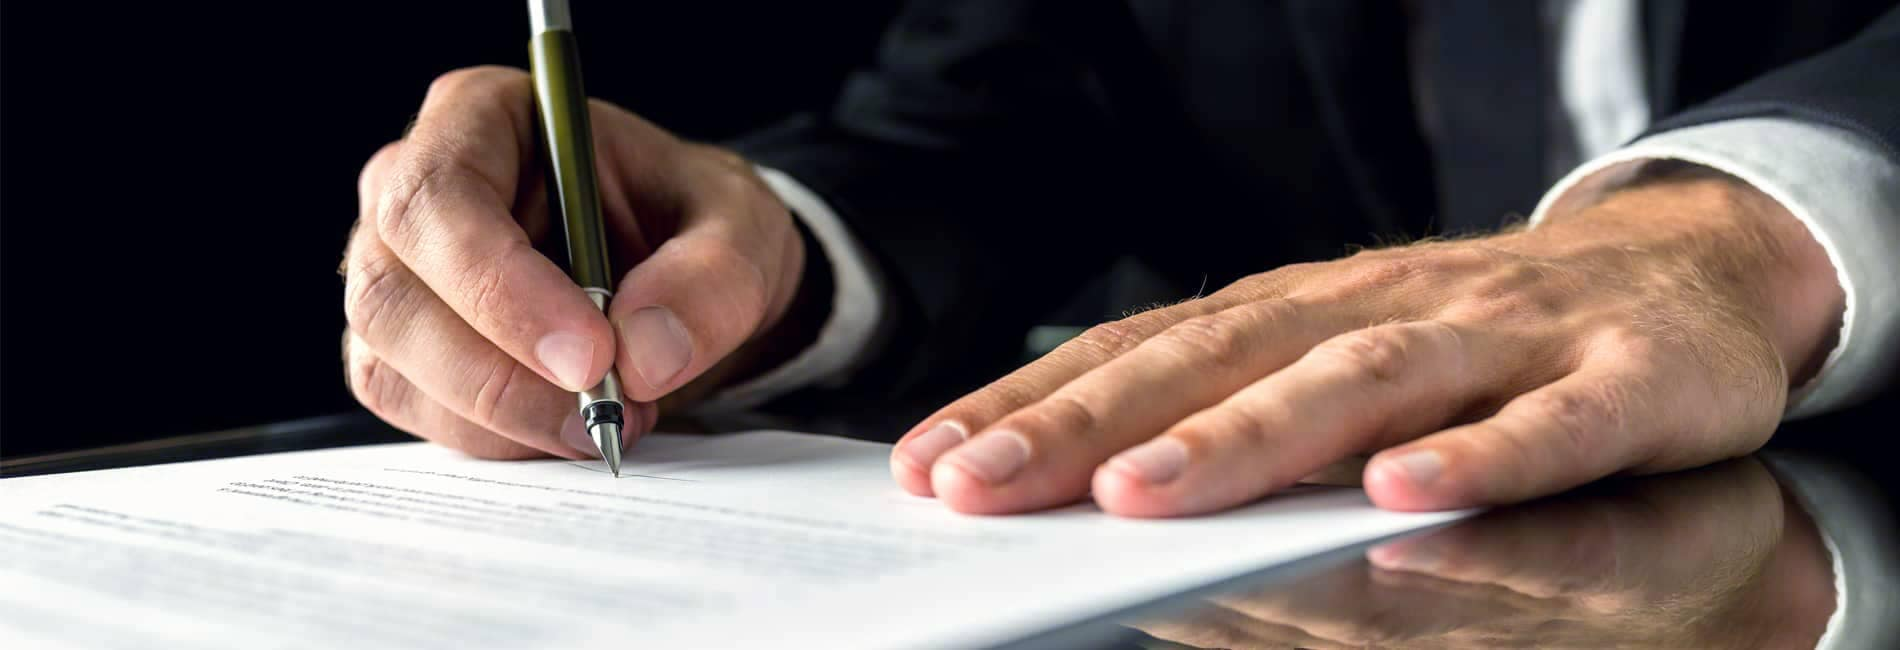 Hands of Man in Suit Signing Document